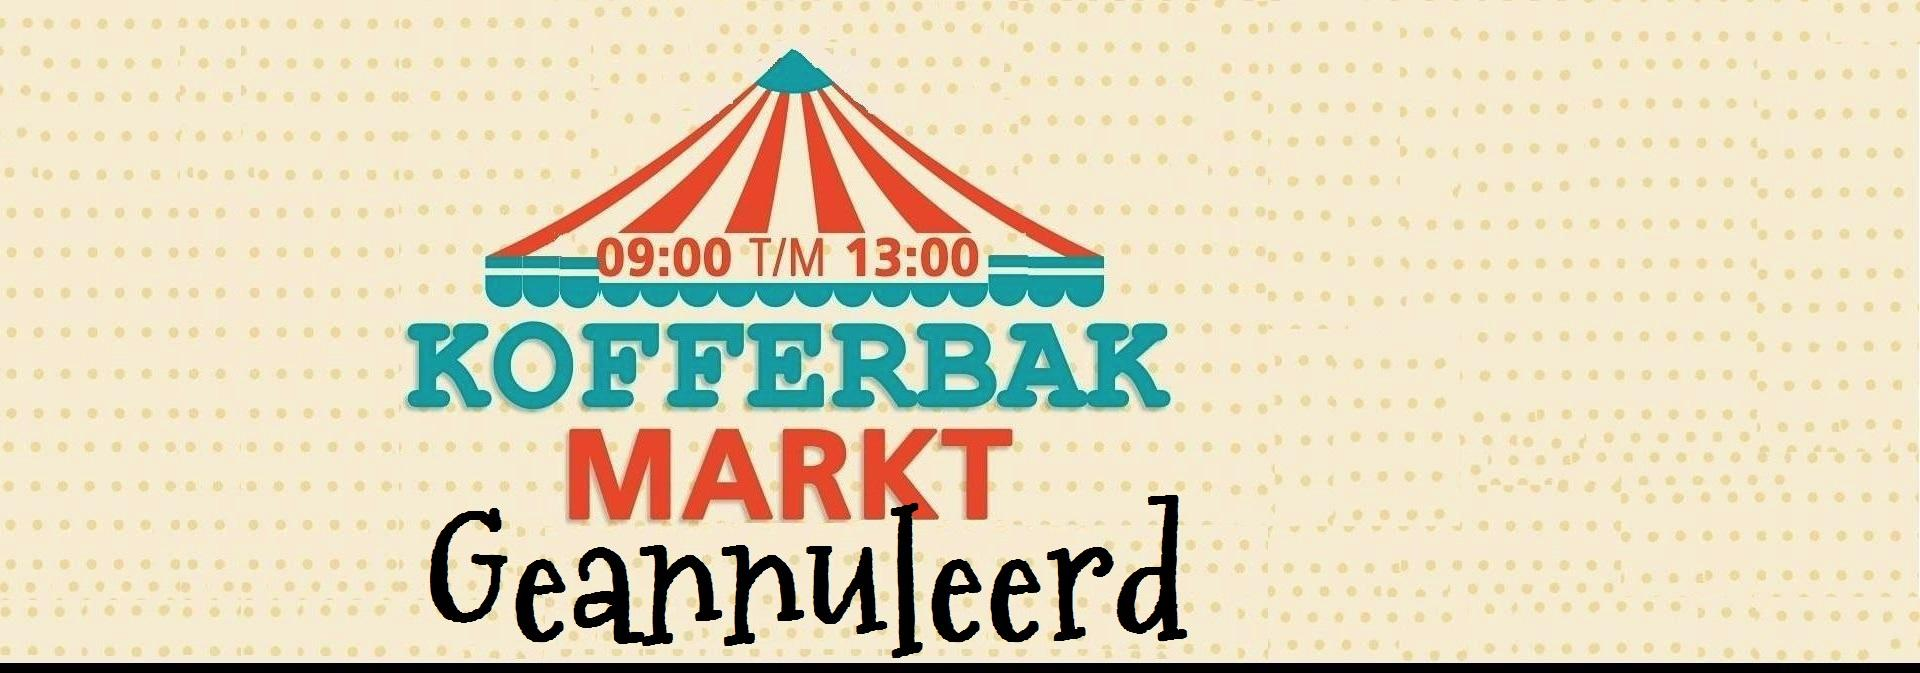 koferbakmarkt sept ann